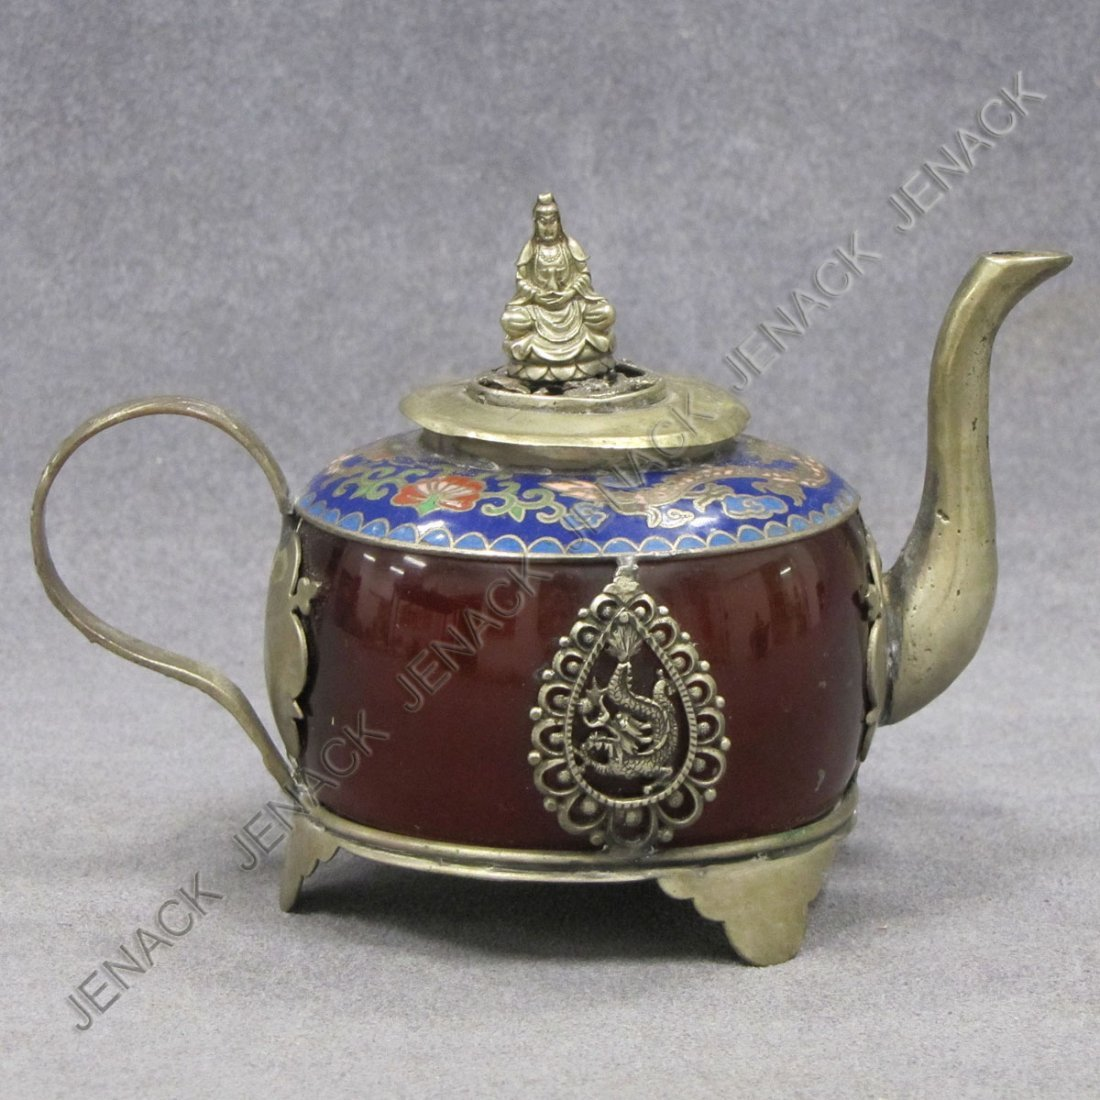 21: CHINESE AGATE TEAPOT WITH CLOISONNE COLLAR